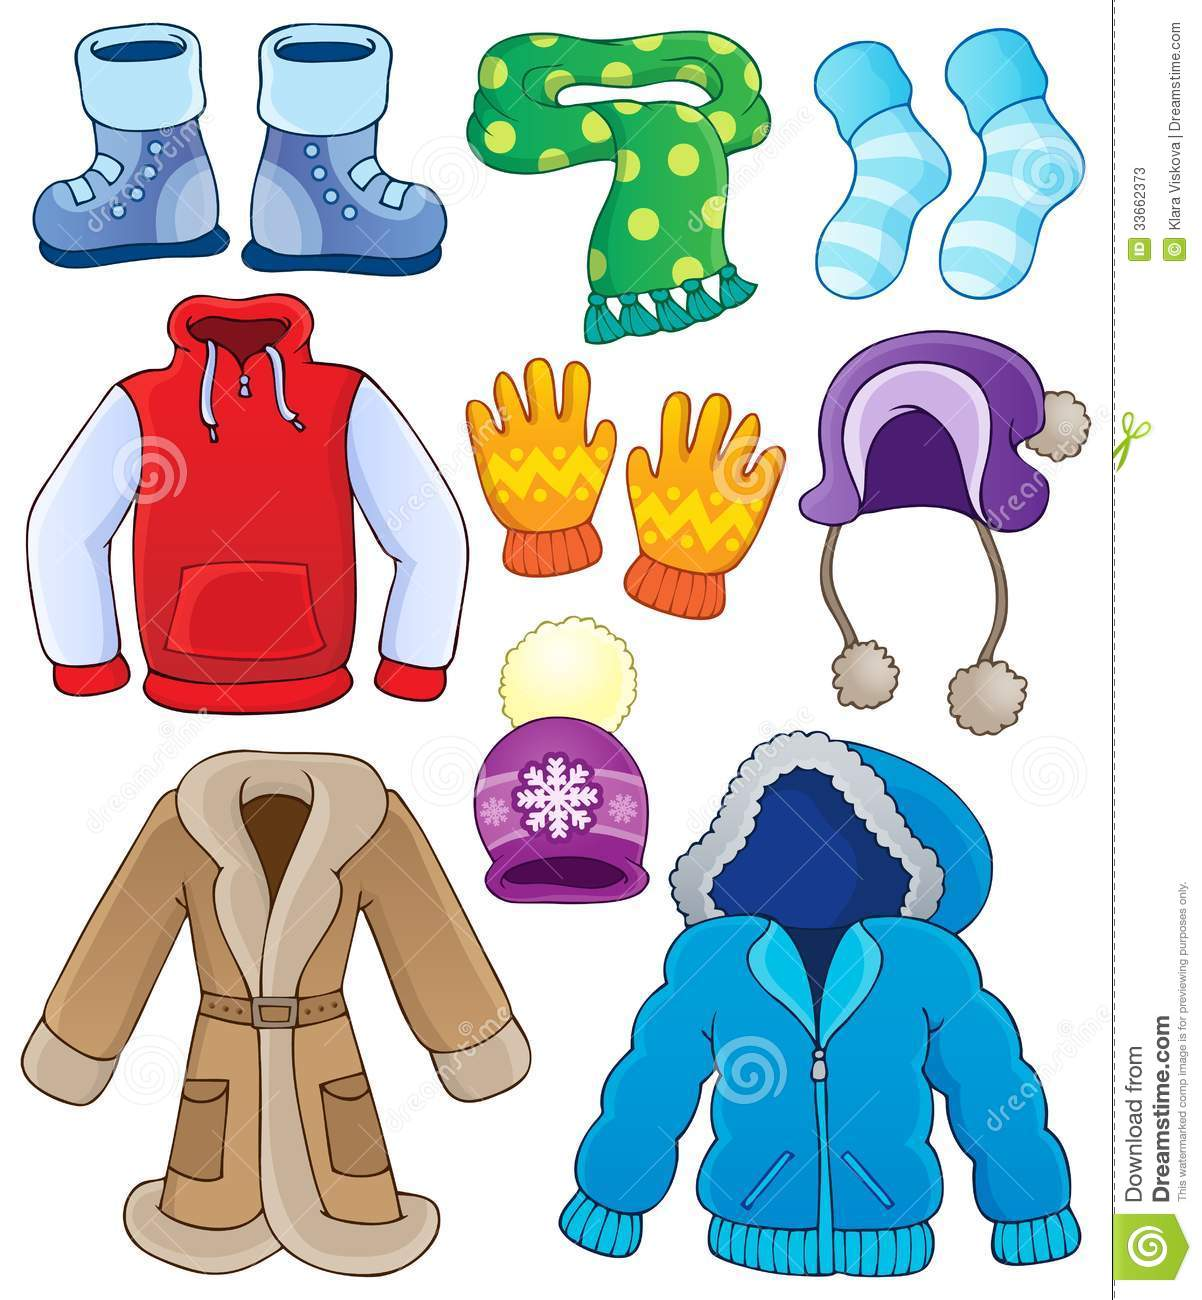 Coat clipart snow jacket Children Art Clothes Winter